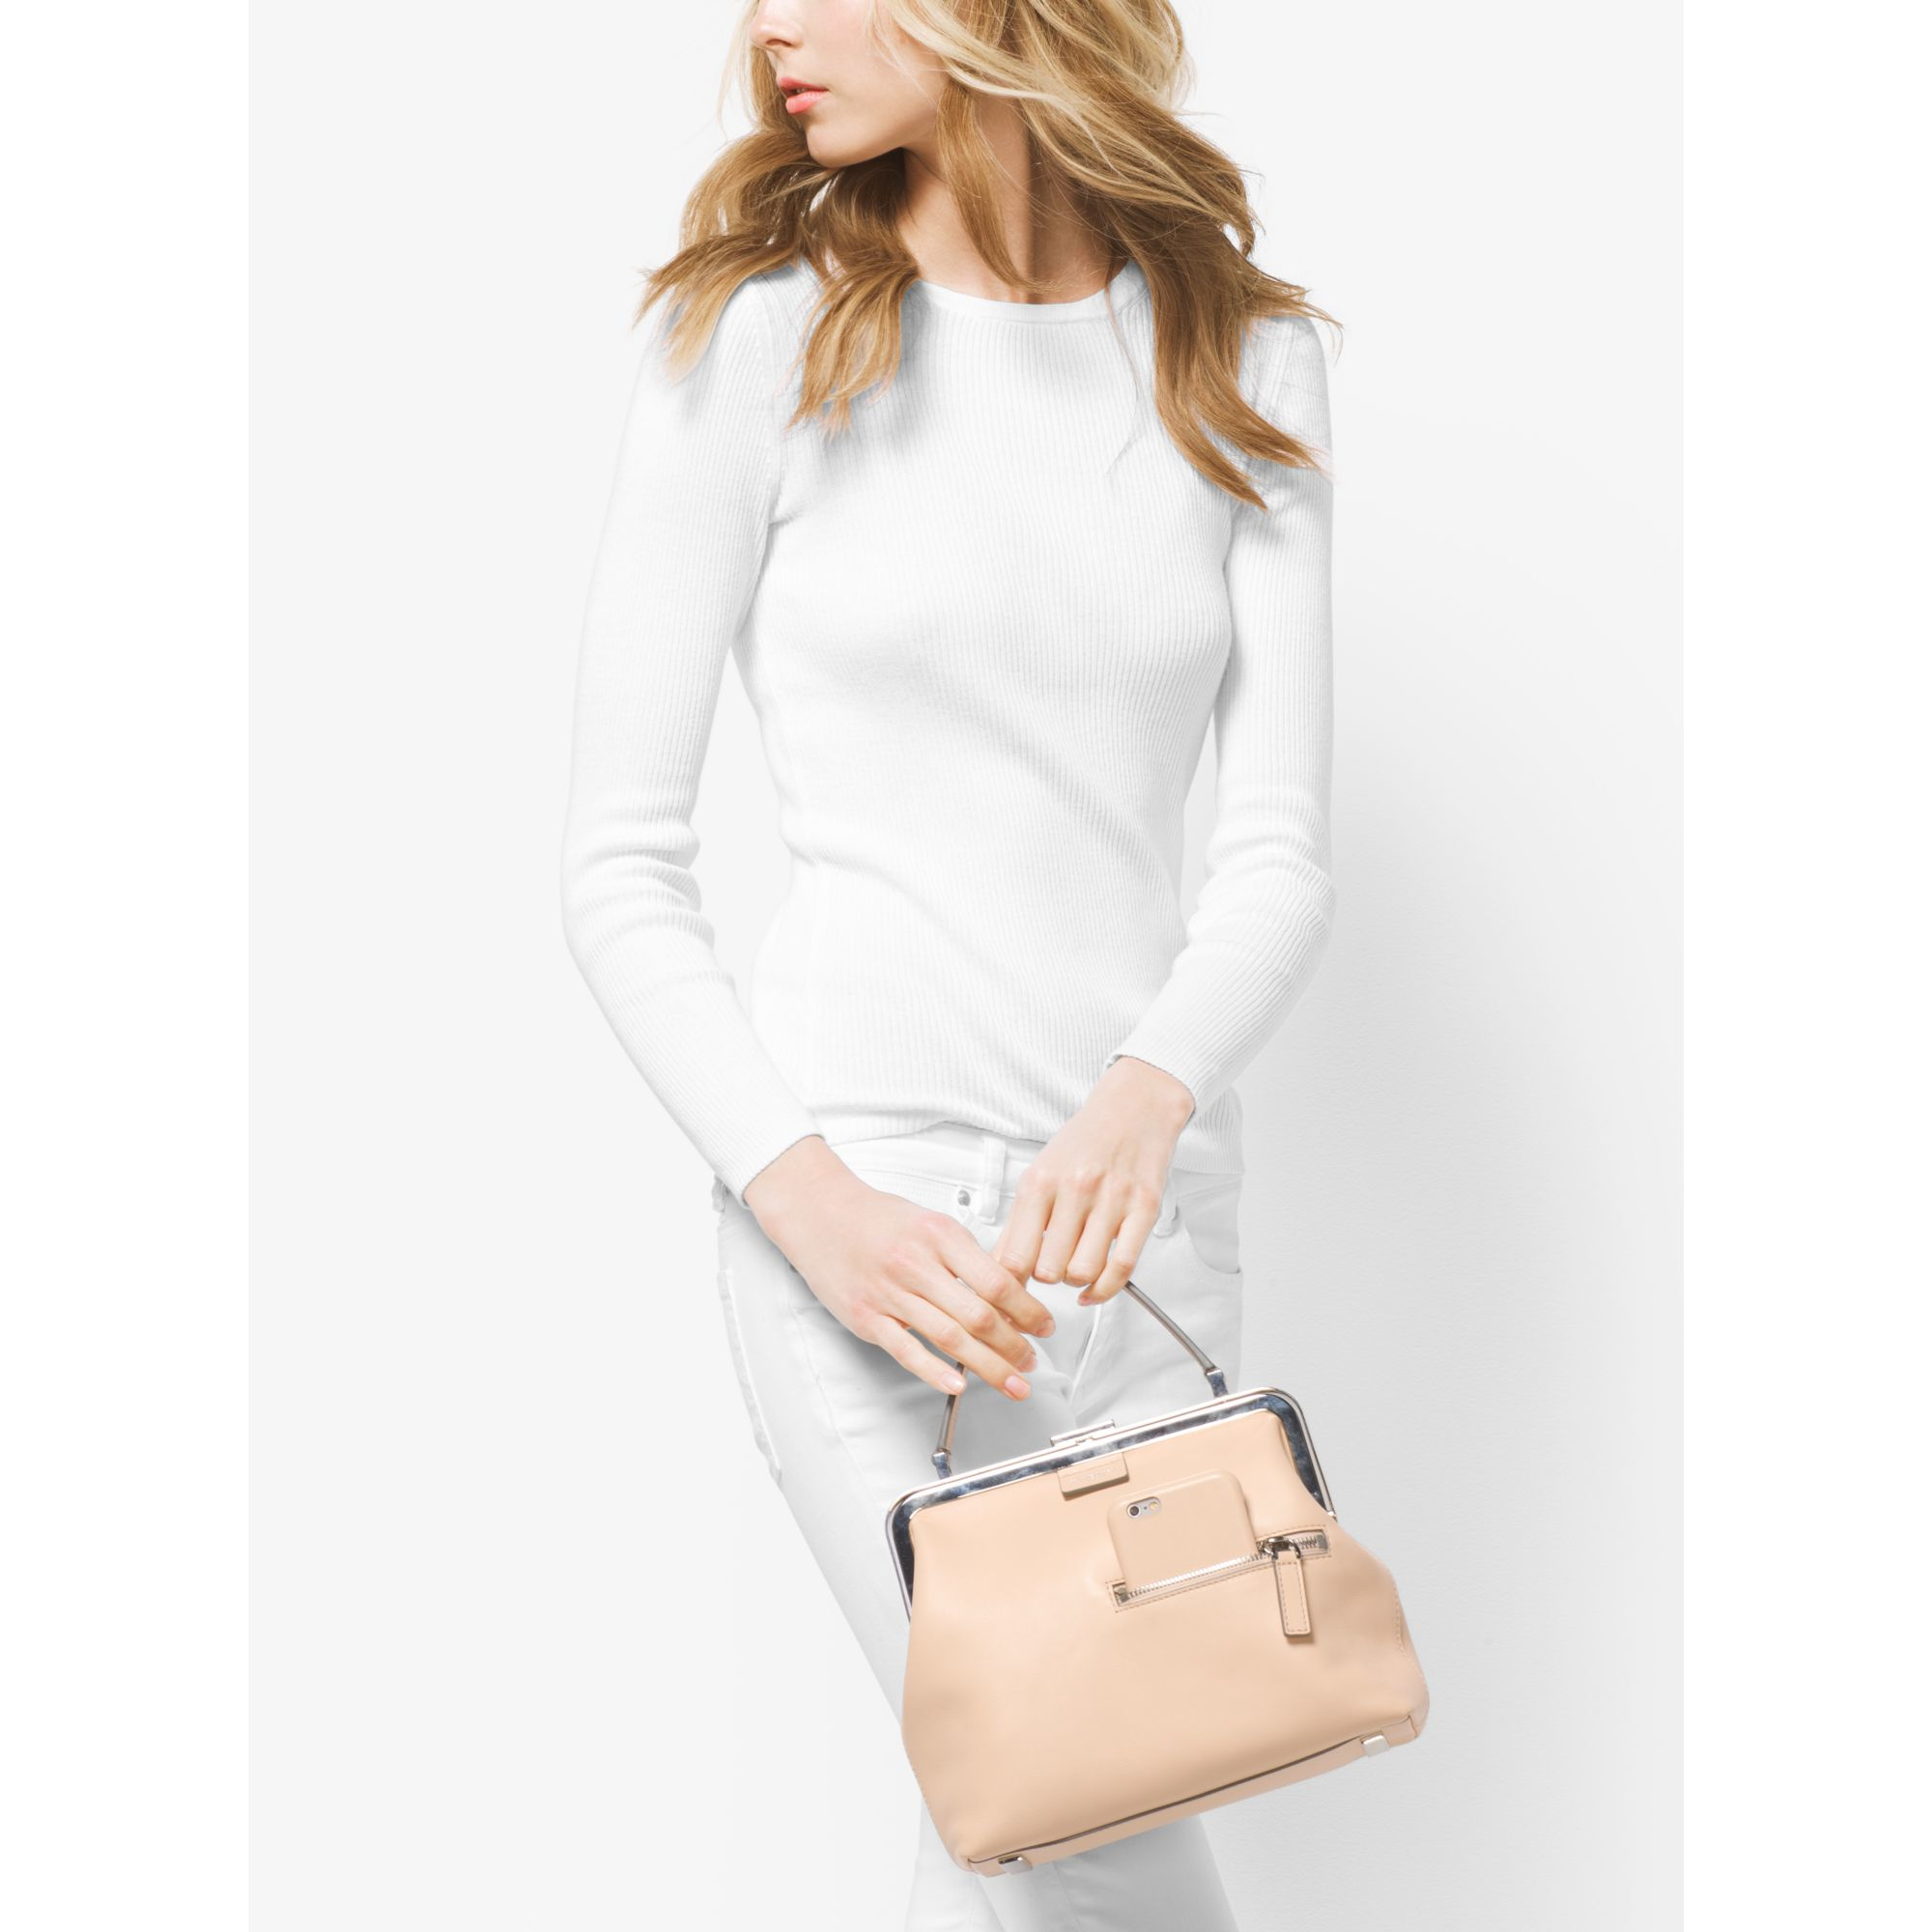 f3921484d4f04 Lyst - Michael Kors Angela Small French Calf Leather Top-handle Bag in  Natural